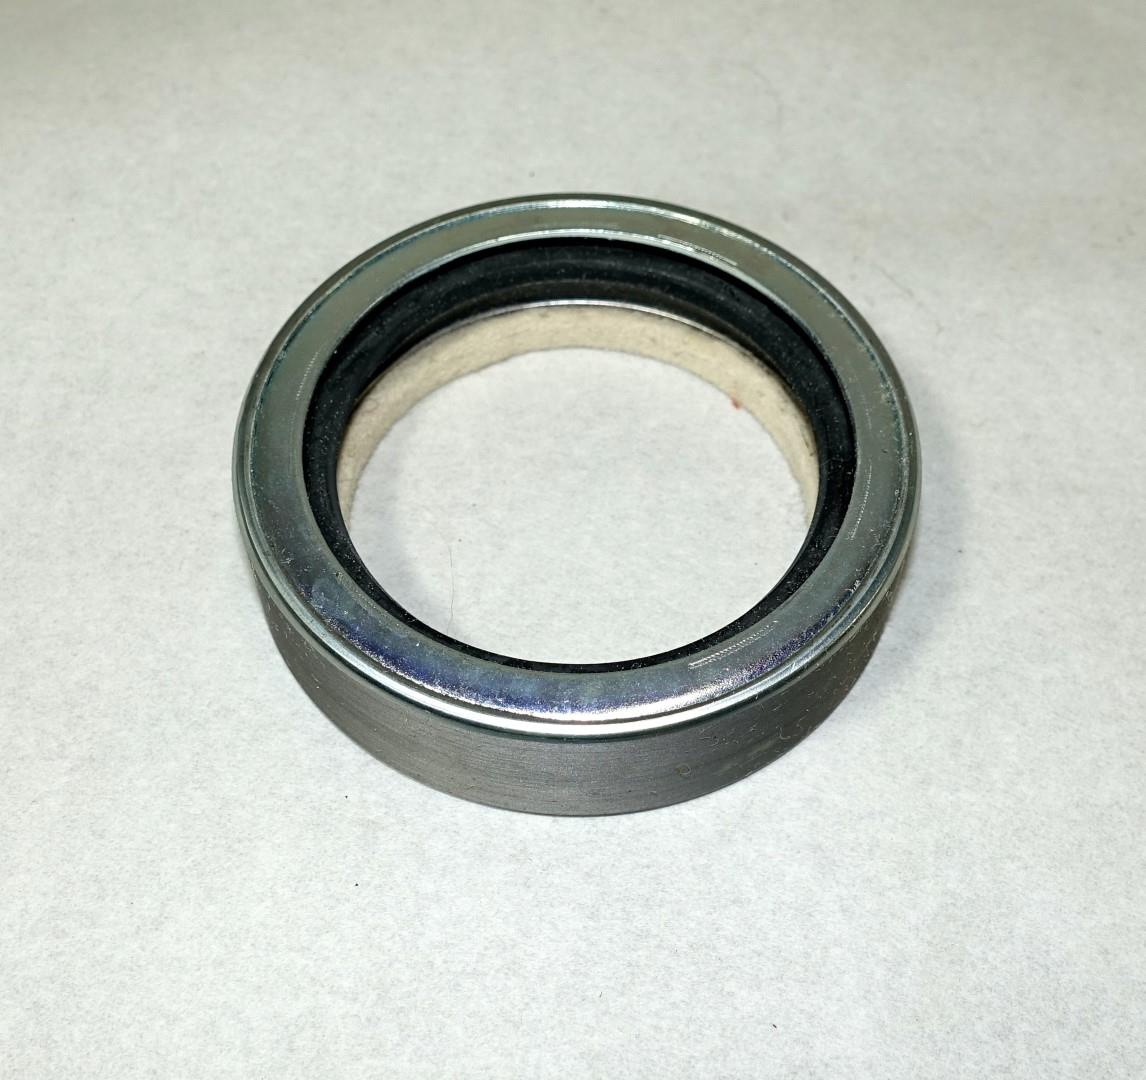 Spicer 3052 / 3053 Transmission Output Shaft Seal for M35A2 Series